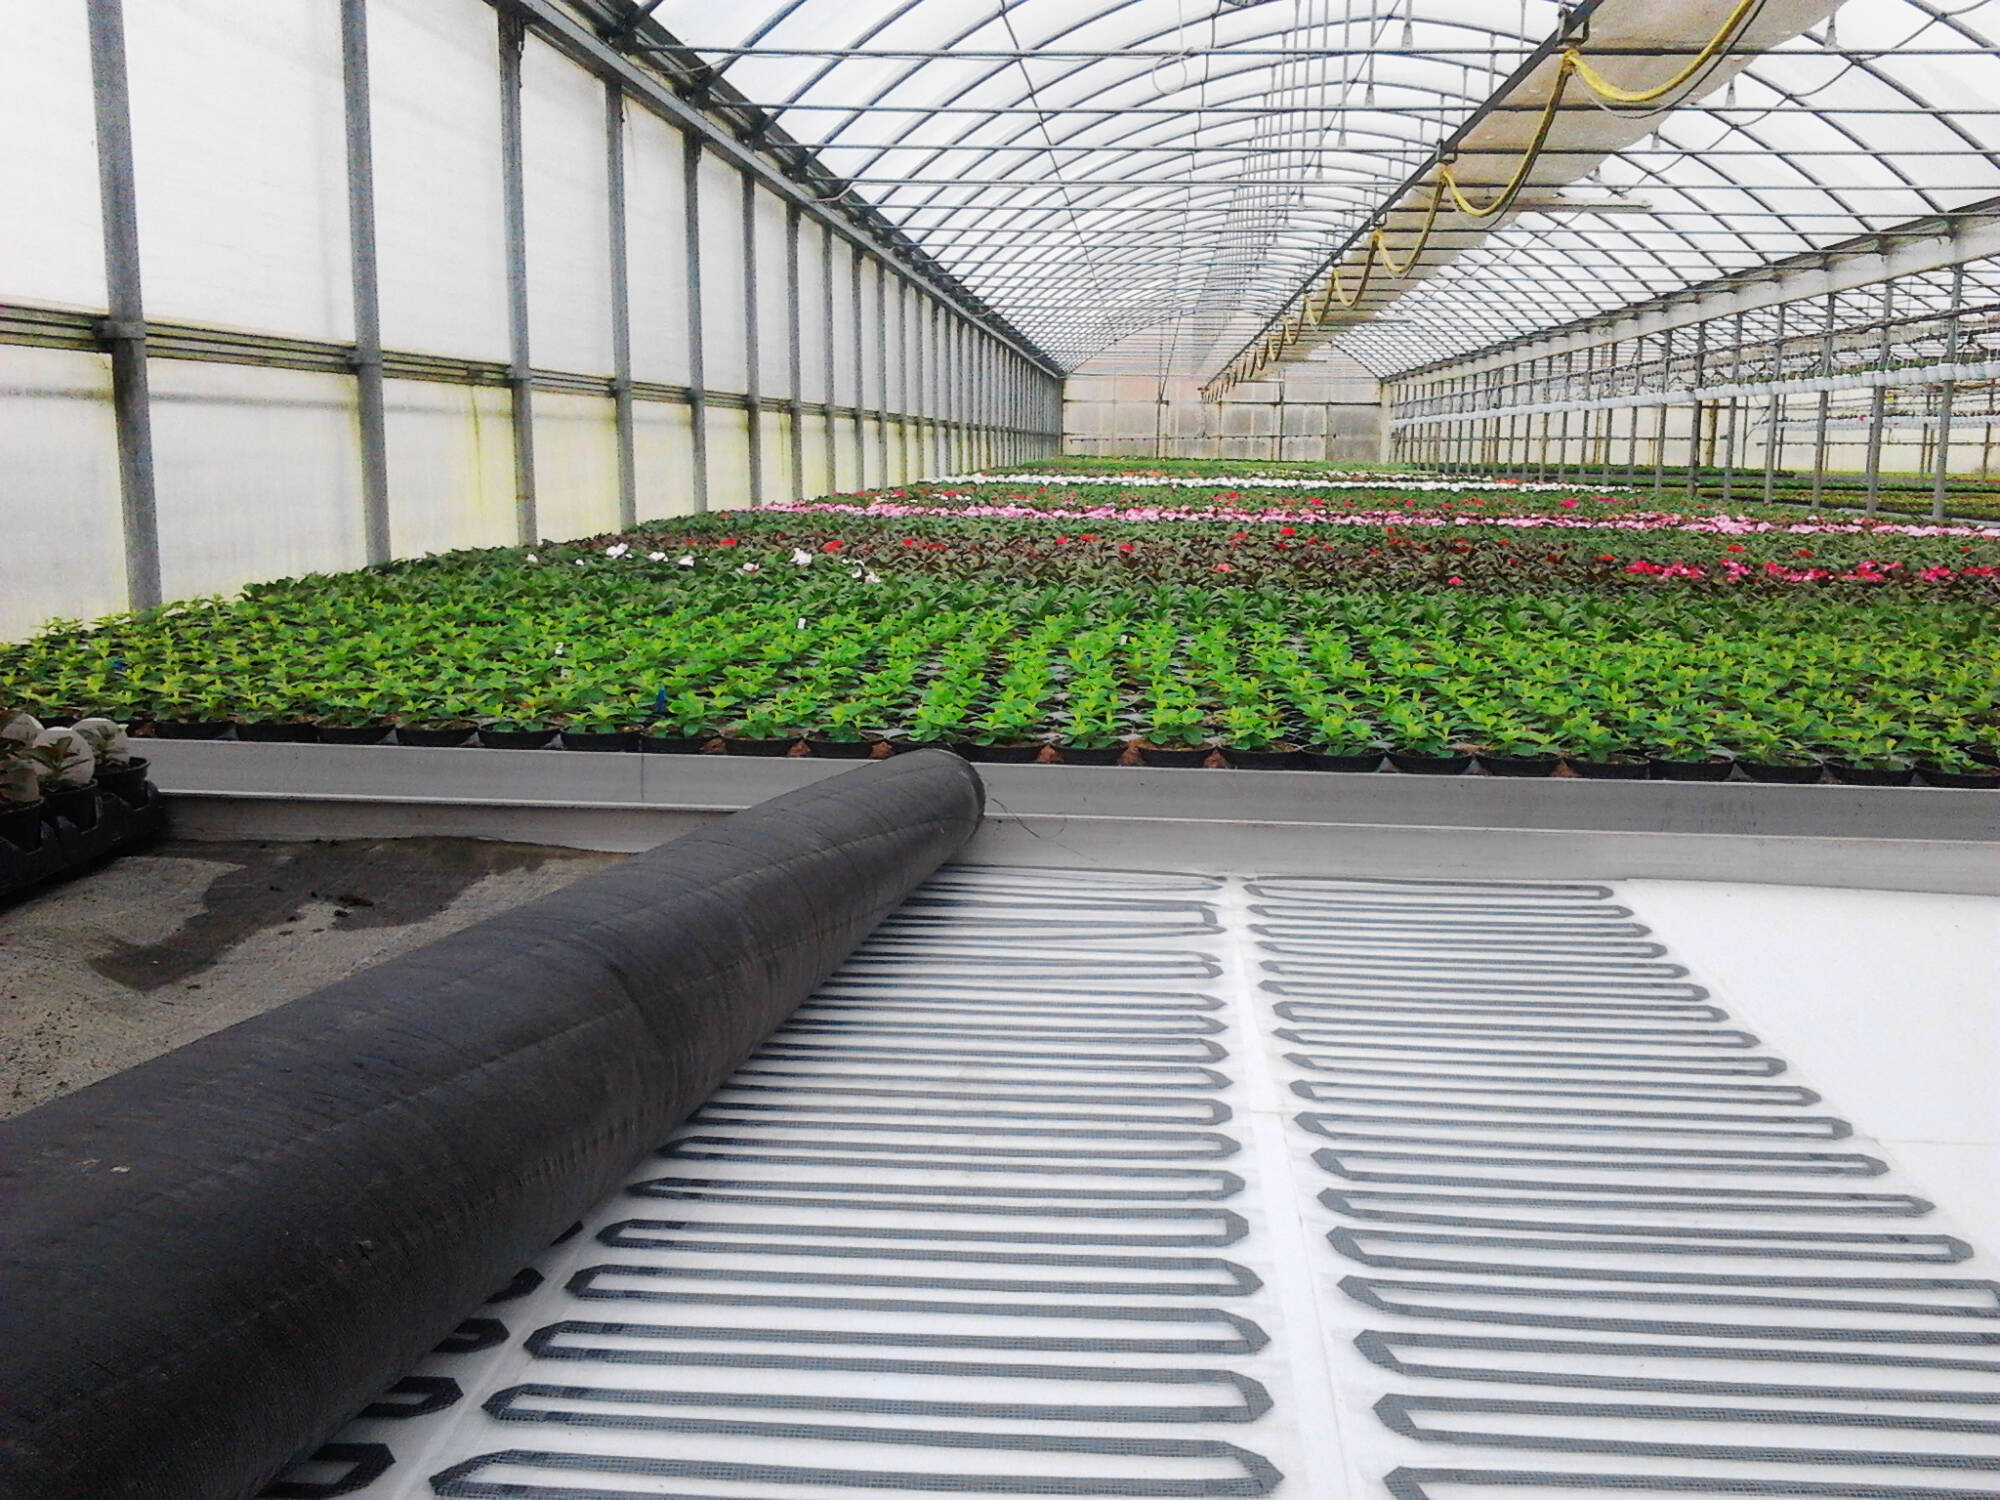 Greenhouse Floor Mats and Heating Systems